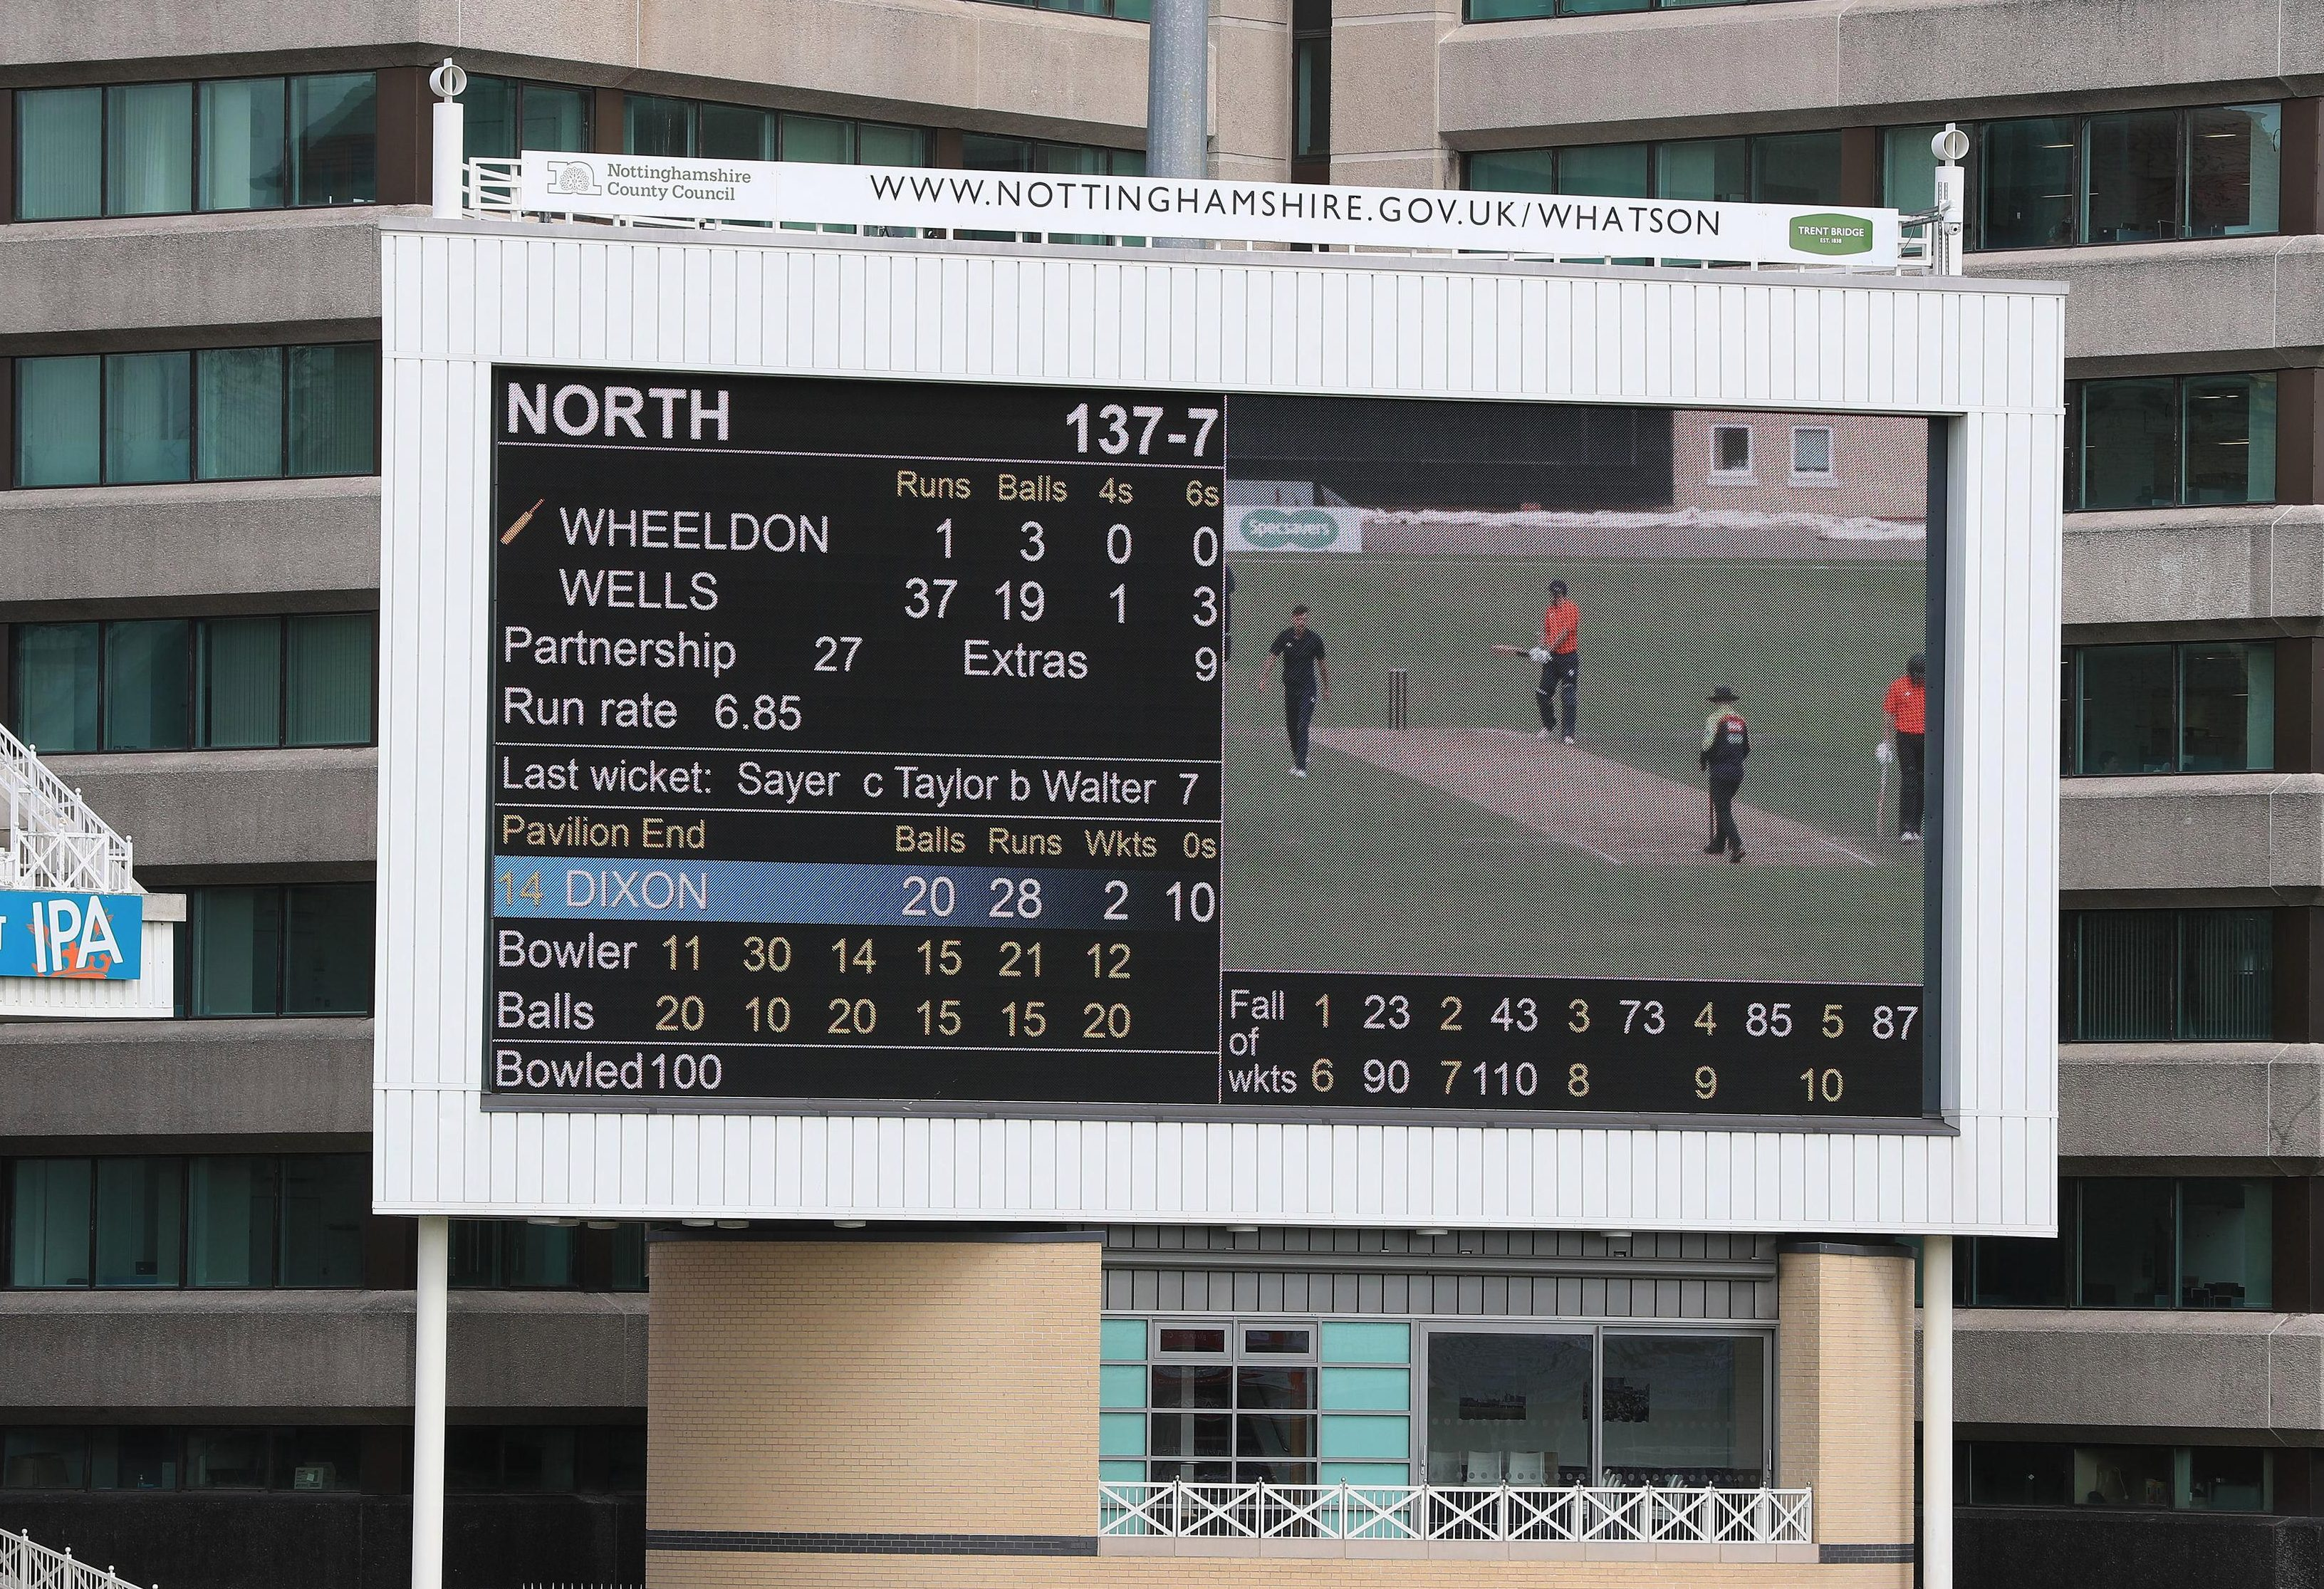 The scoreboard after the first innings, as the North compiled 137-7 at Trent Bridge